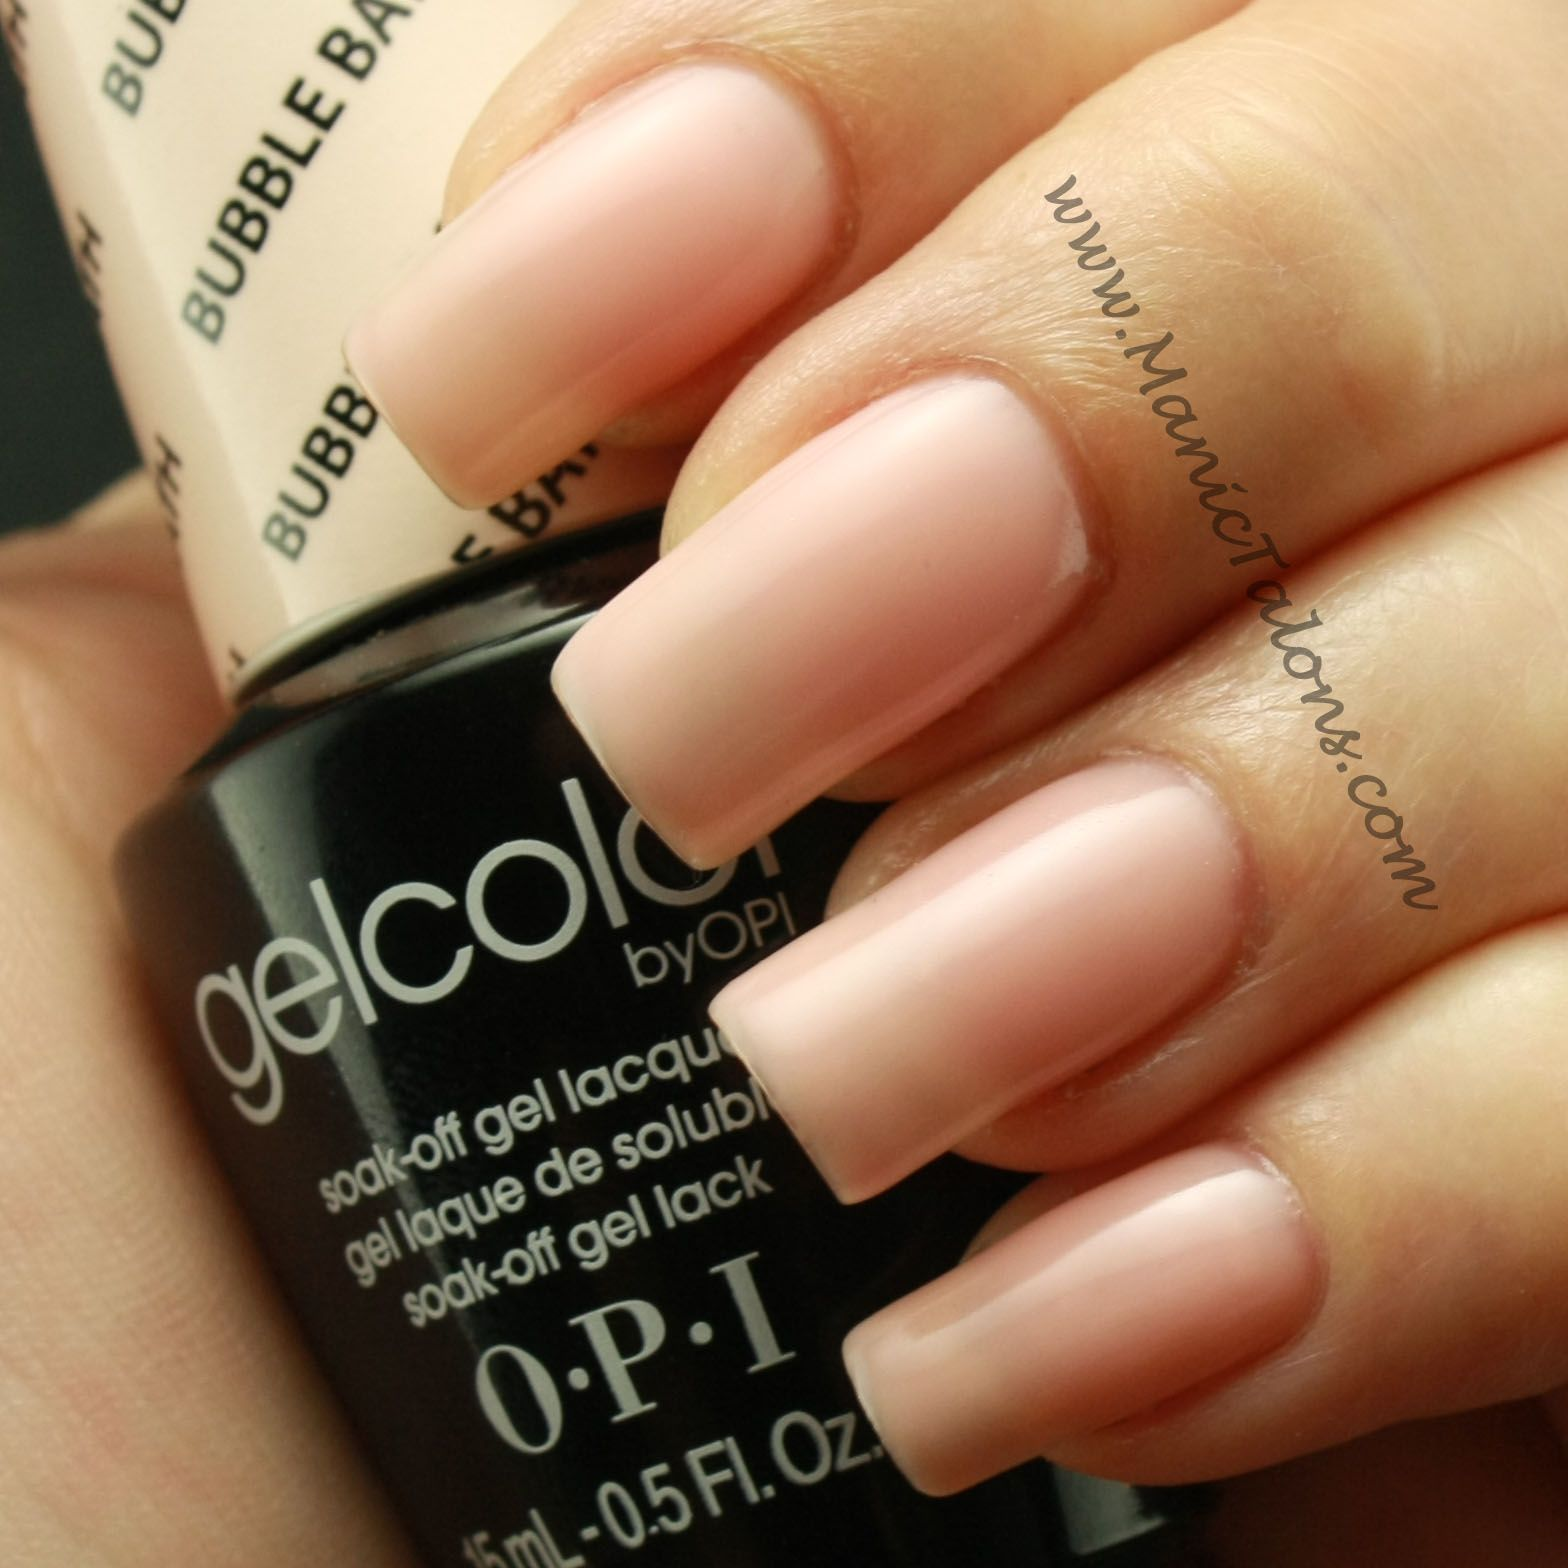 OPI GelColor Bubble Bath | OPI | Pinterest